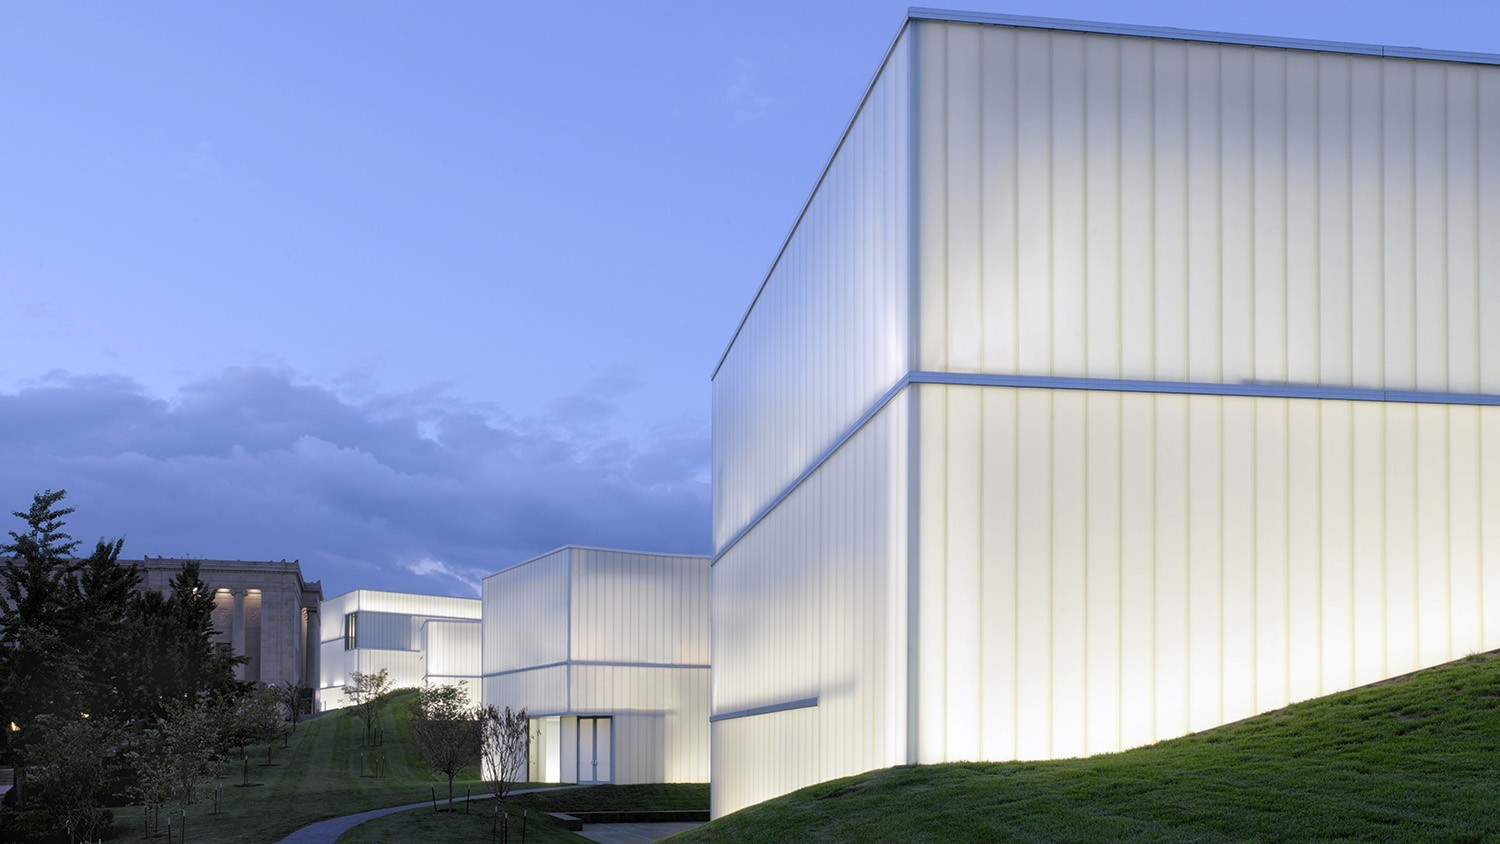 Diffused Light How To Design Lantern Buildings With Self Supporting Glass Walls Archdaily